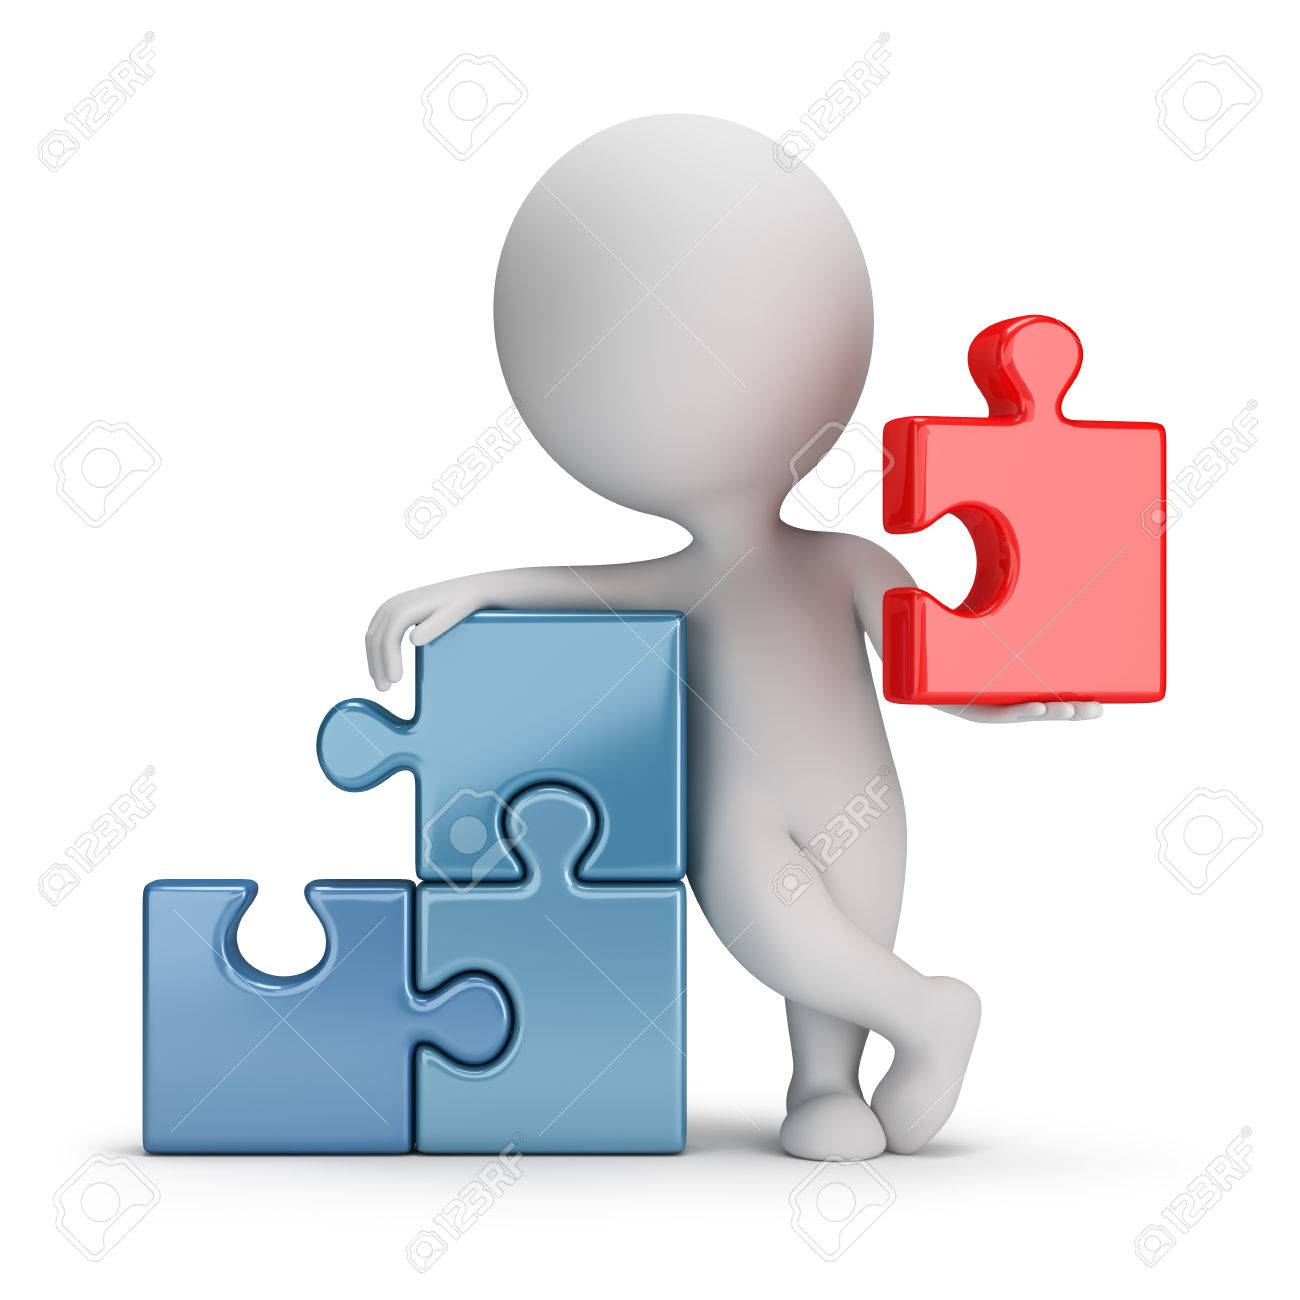 3d small person wielding main puzzle  3d image  White background Stock Photo - 29691197